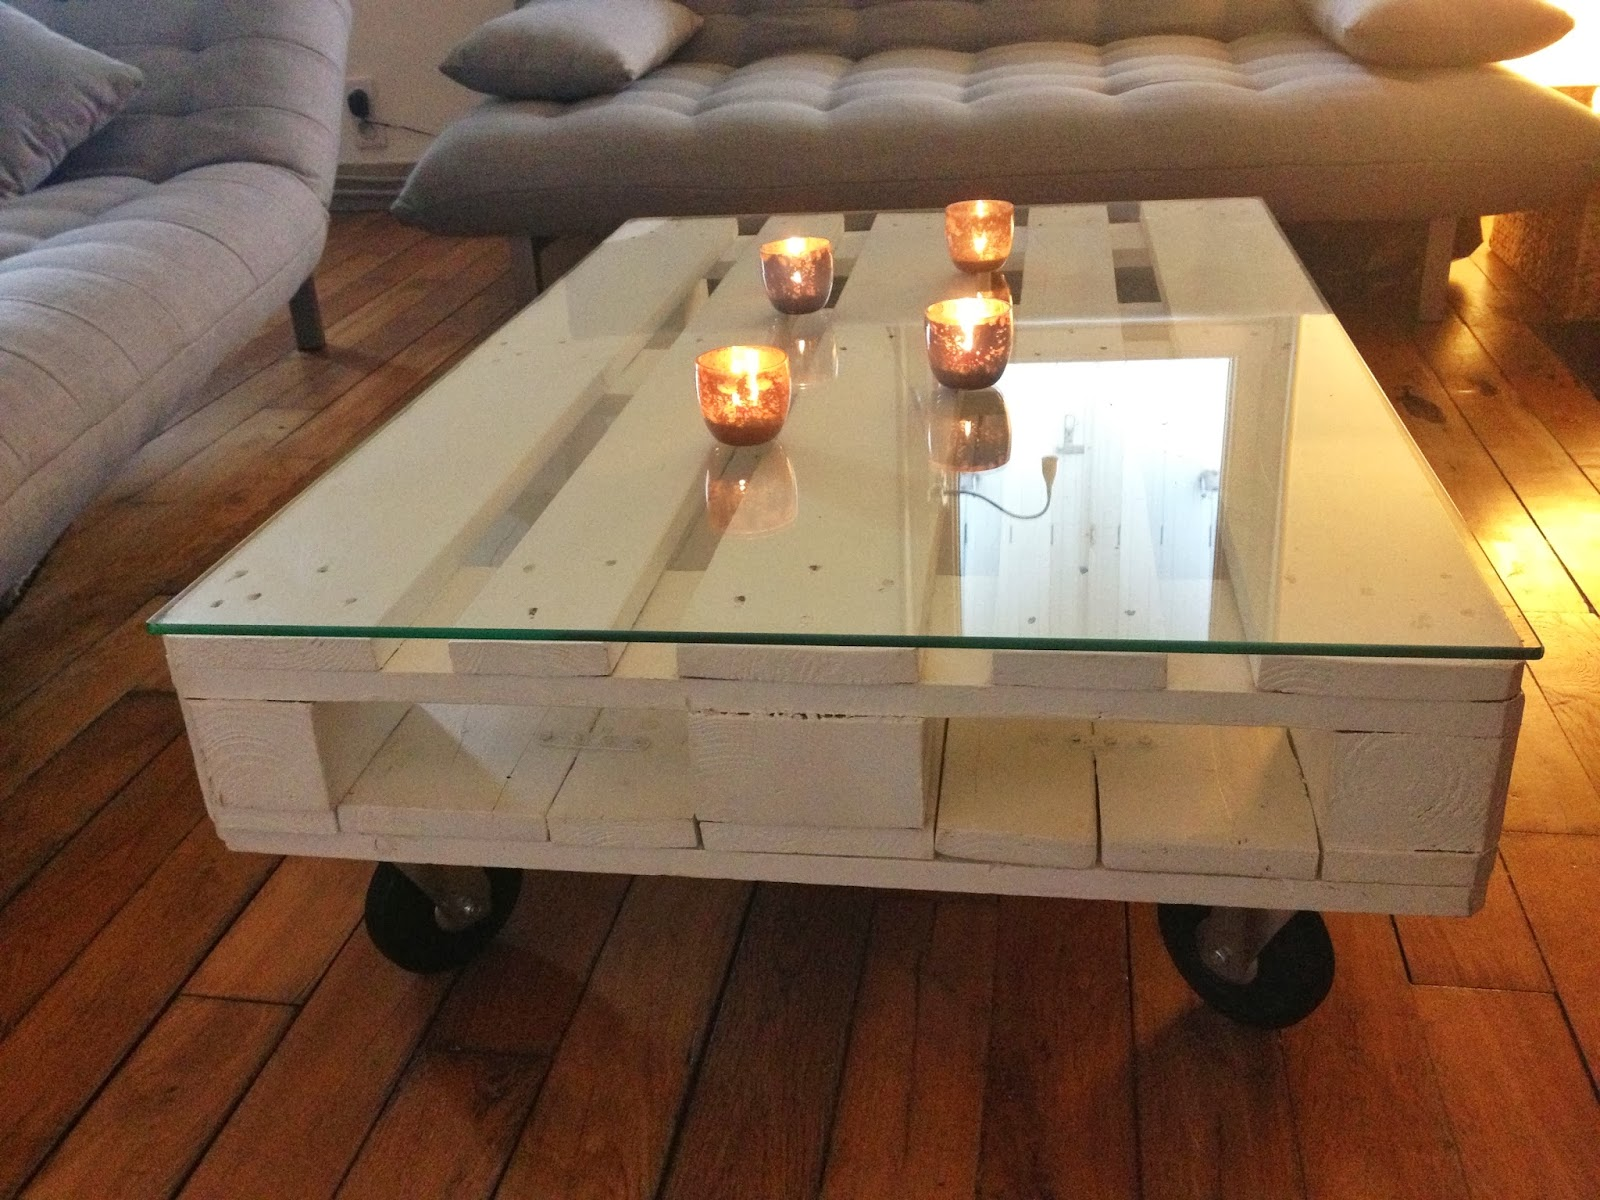 Diy la table basse conviviale for Table basse de la maison